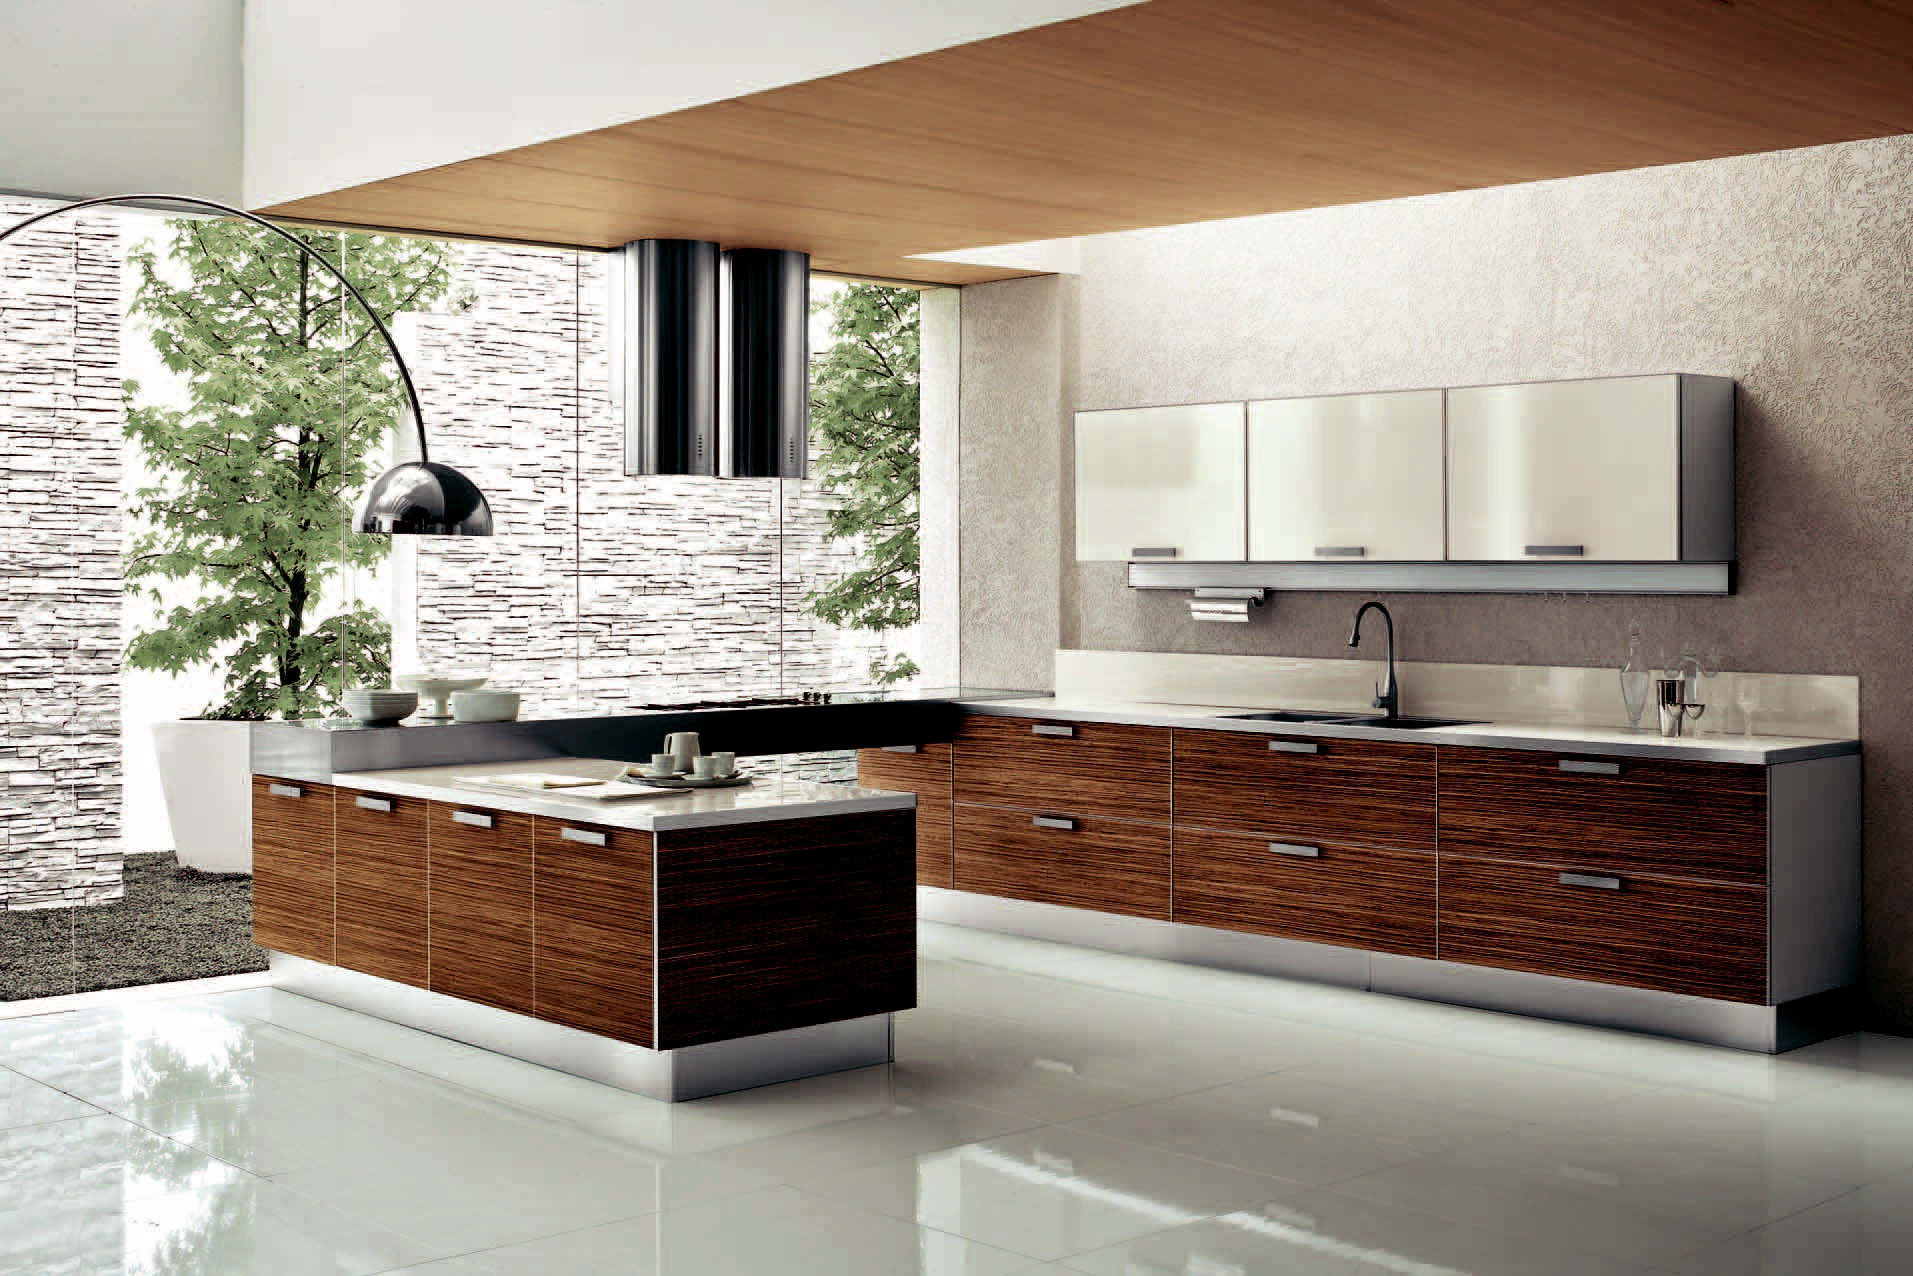 Beyond kitchens kitchen cupboards cape town kitchens for Kitchen designs boksburg